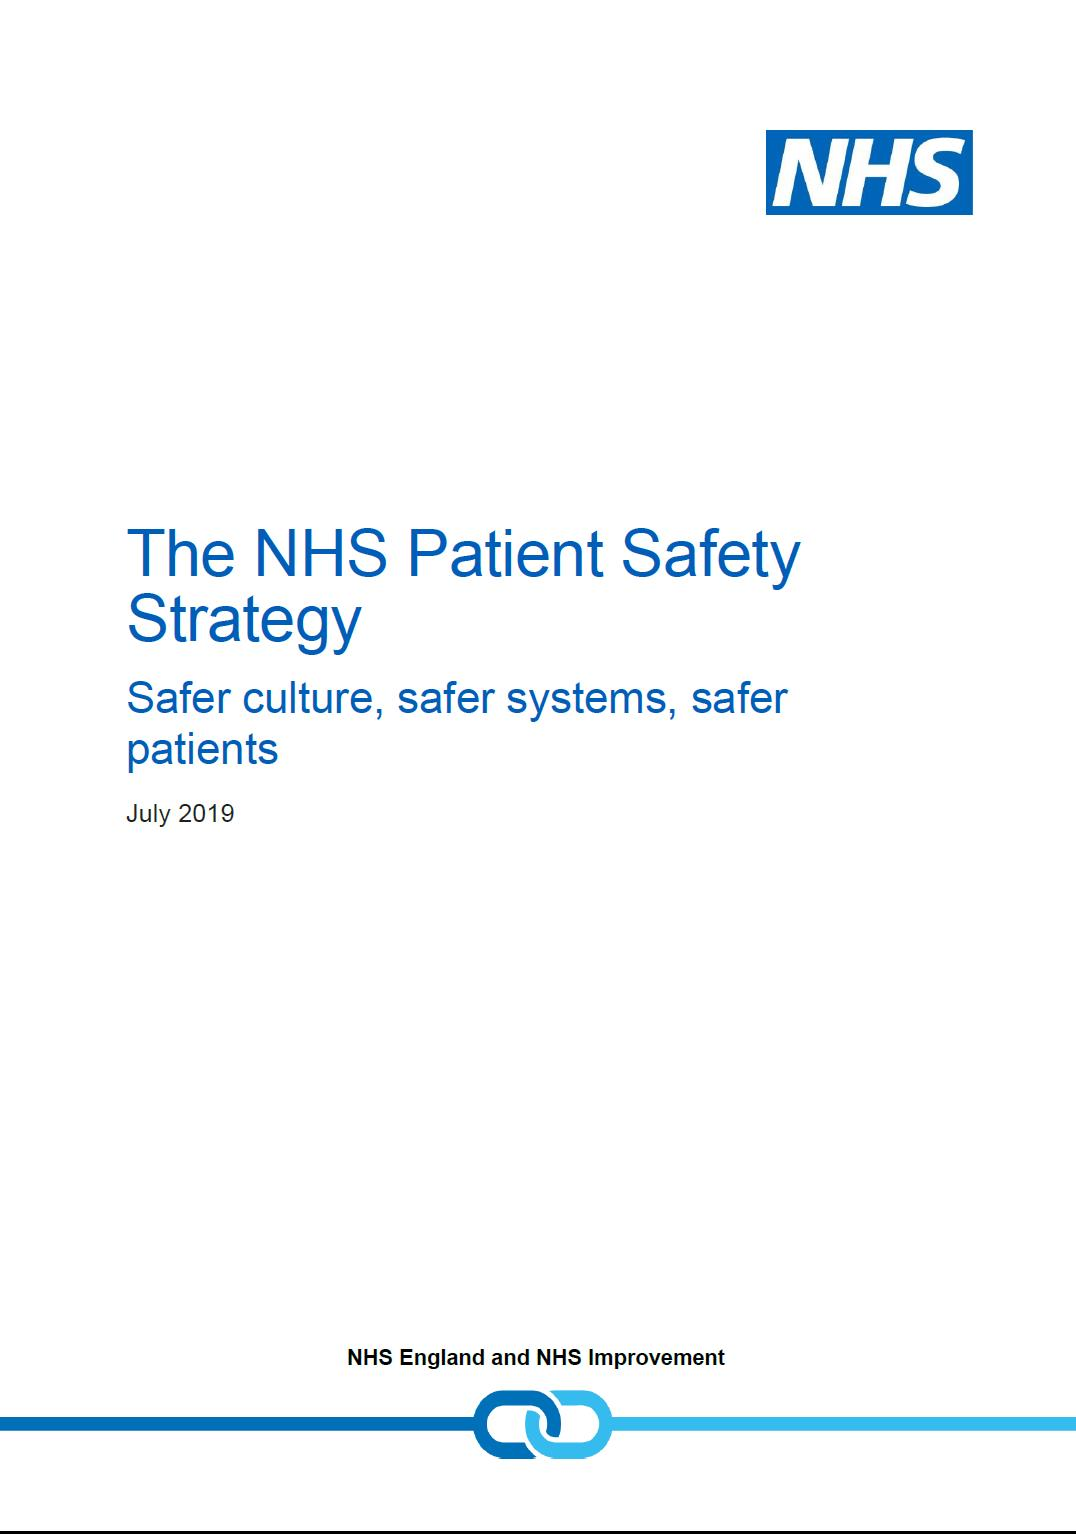 Patient Safety Strategy 2019